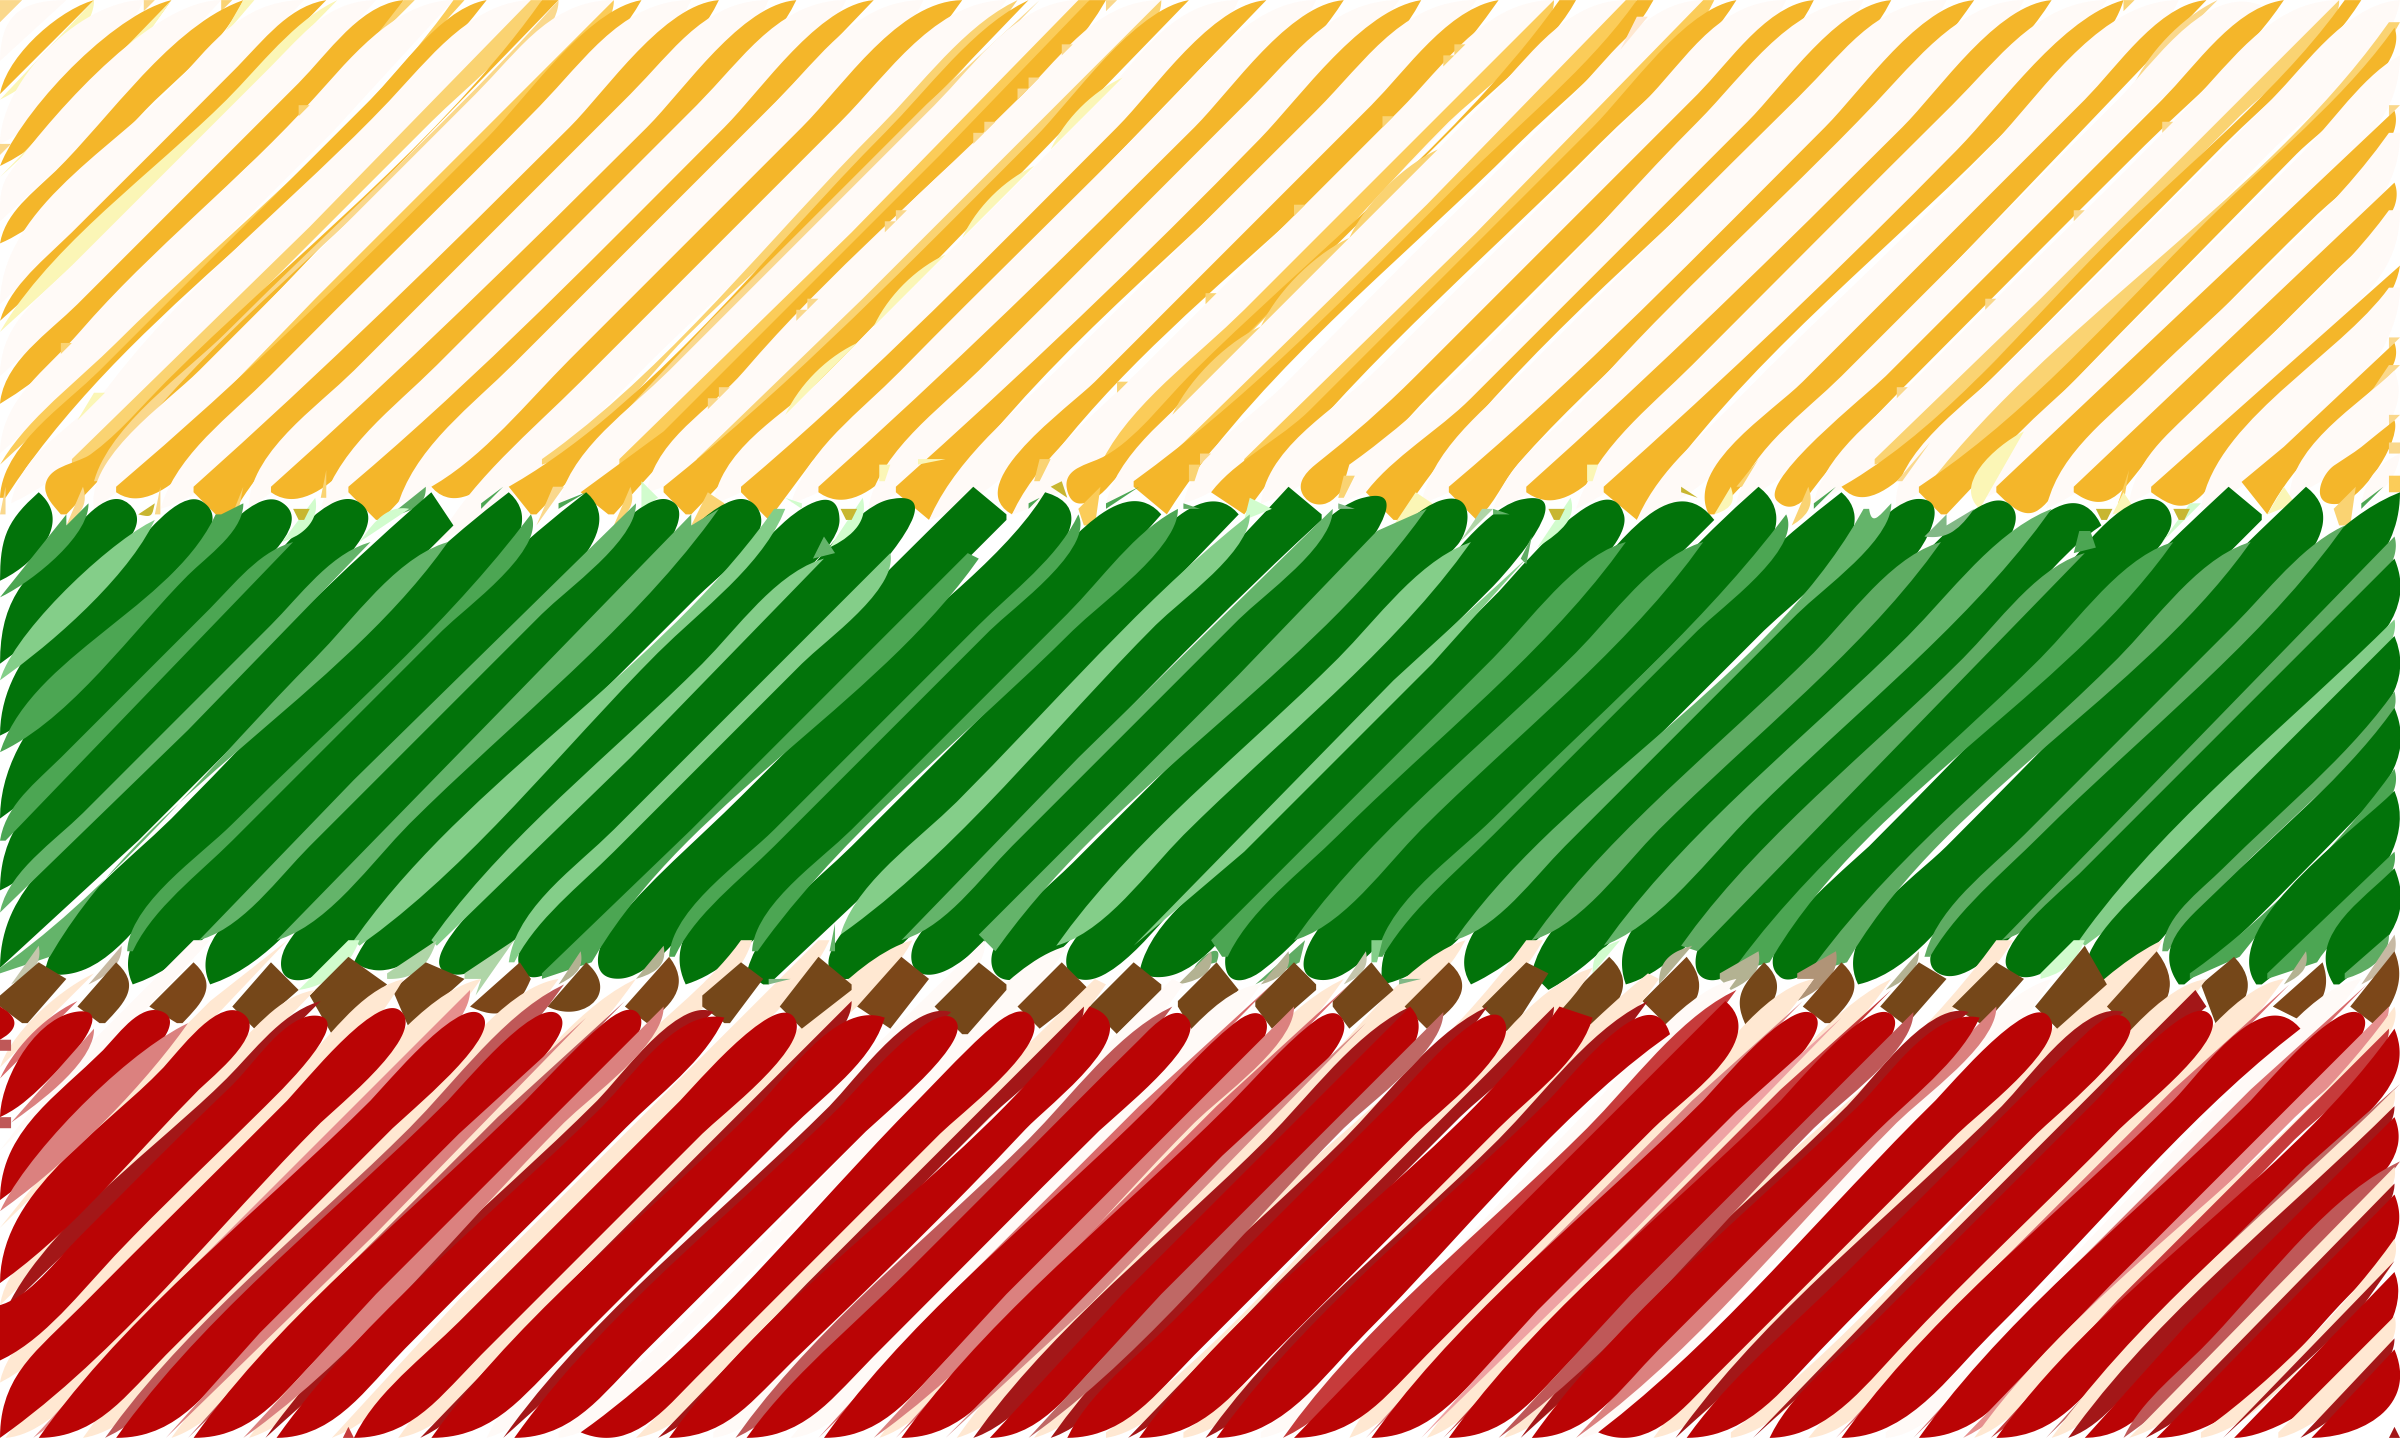 Lithuania flag linear by Joesph